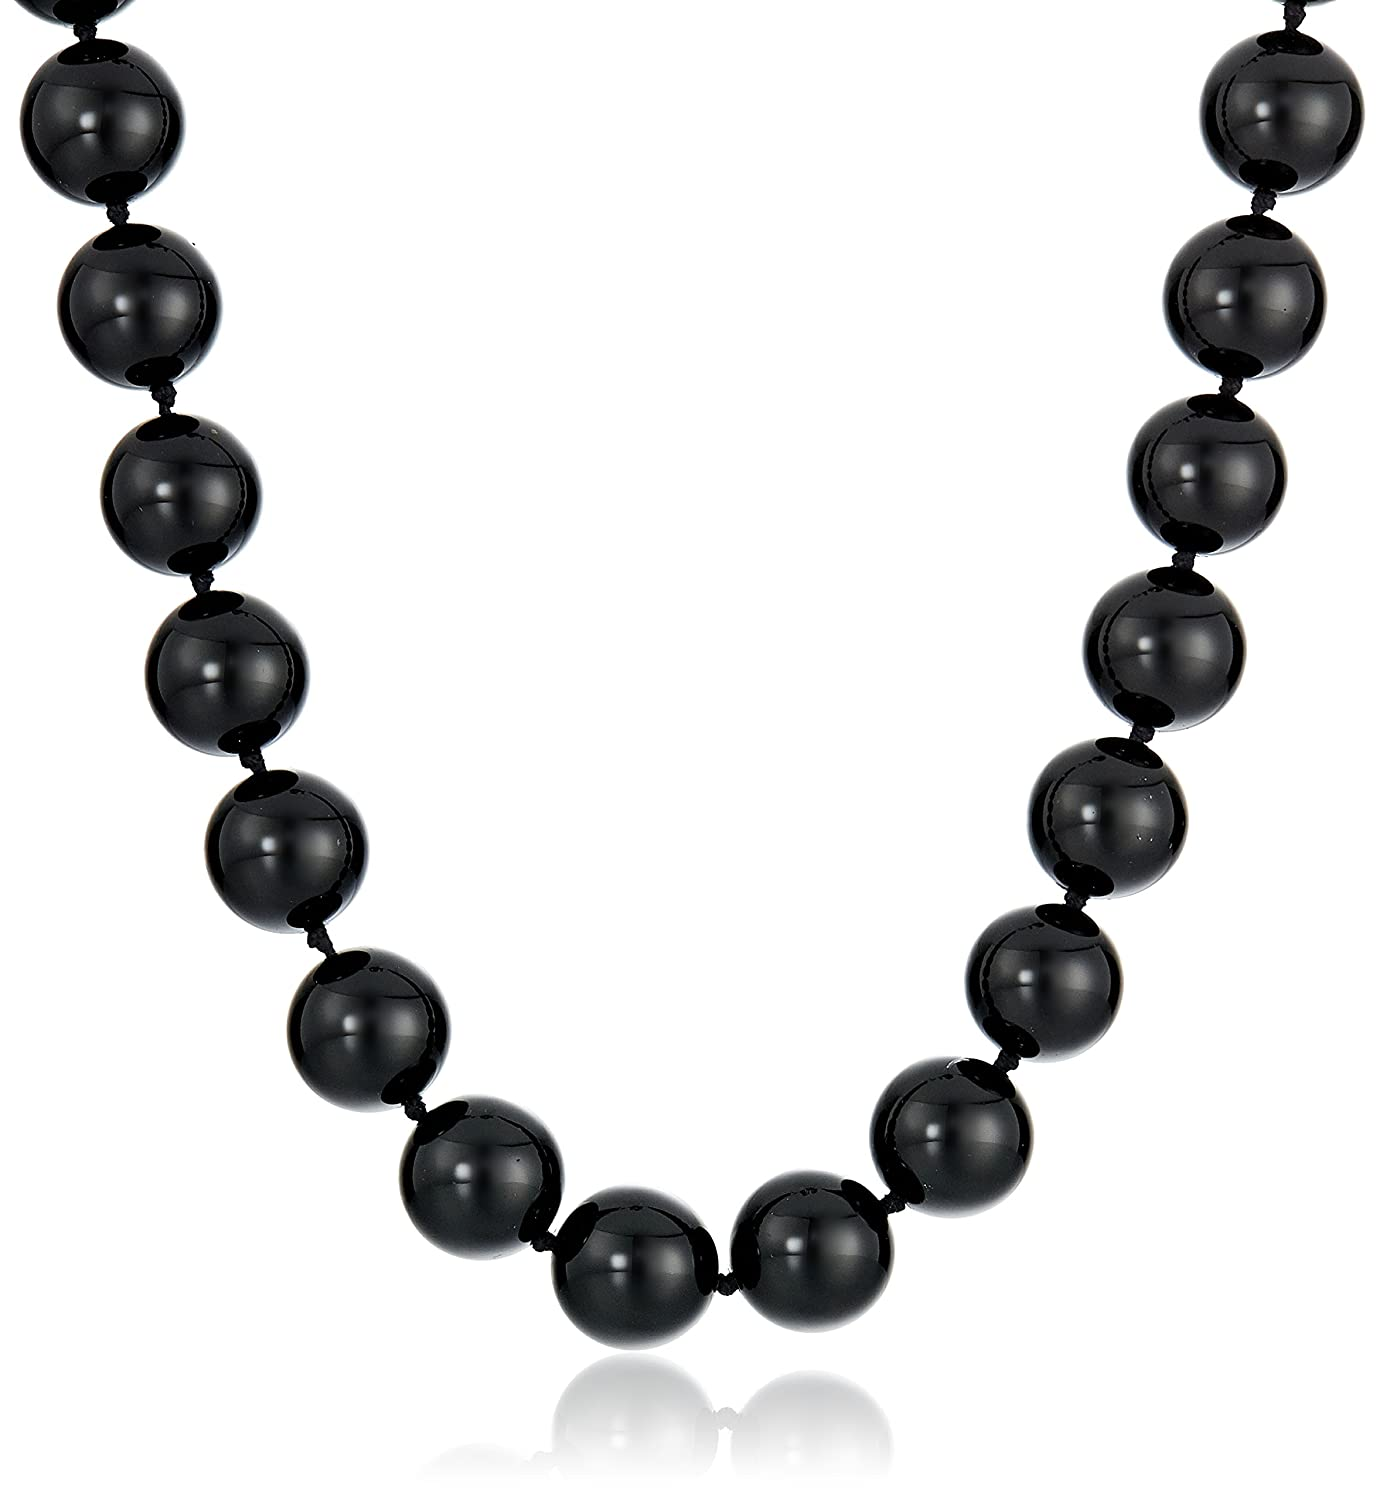 Sterling Silver 12mm Black Onyx Bead Necklace, 17+ 2 extender 17+ 2 extender Amazon Collection BO-12P/16SS